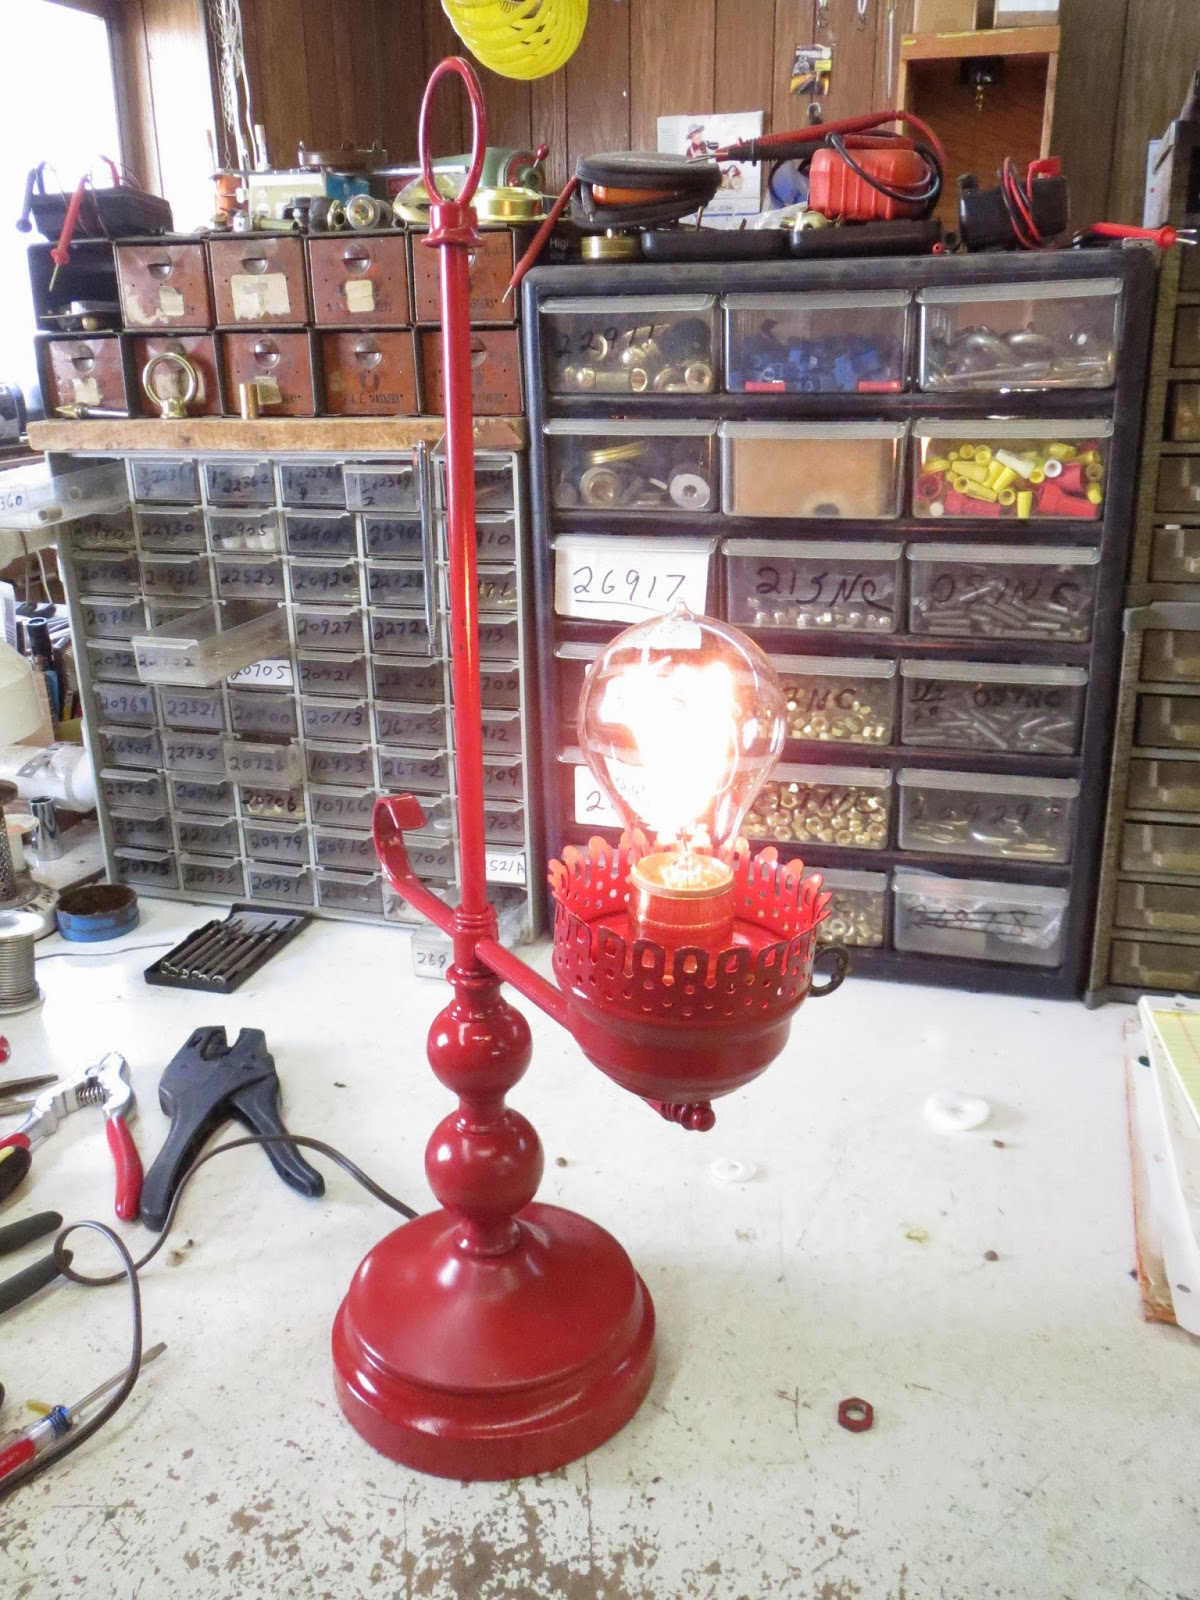 Lamp parts and repair lamp doctor red table lamp with arm gets lamp parts and repair lamp doctor red table lamp with arm gets rewired keyboard keysfo Gallery